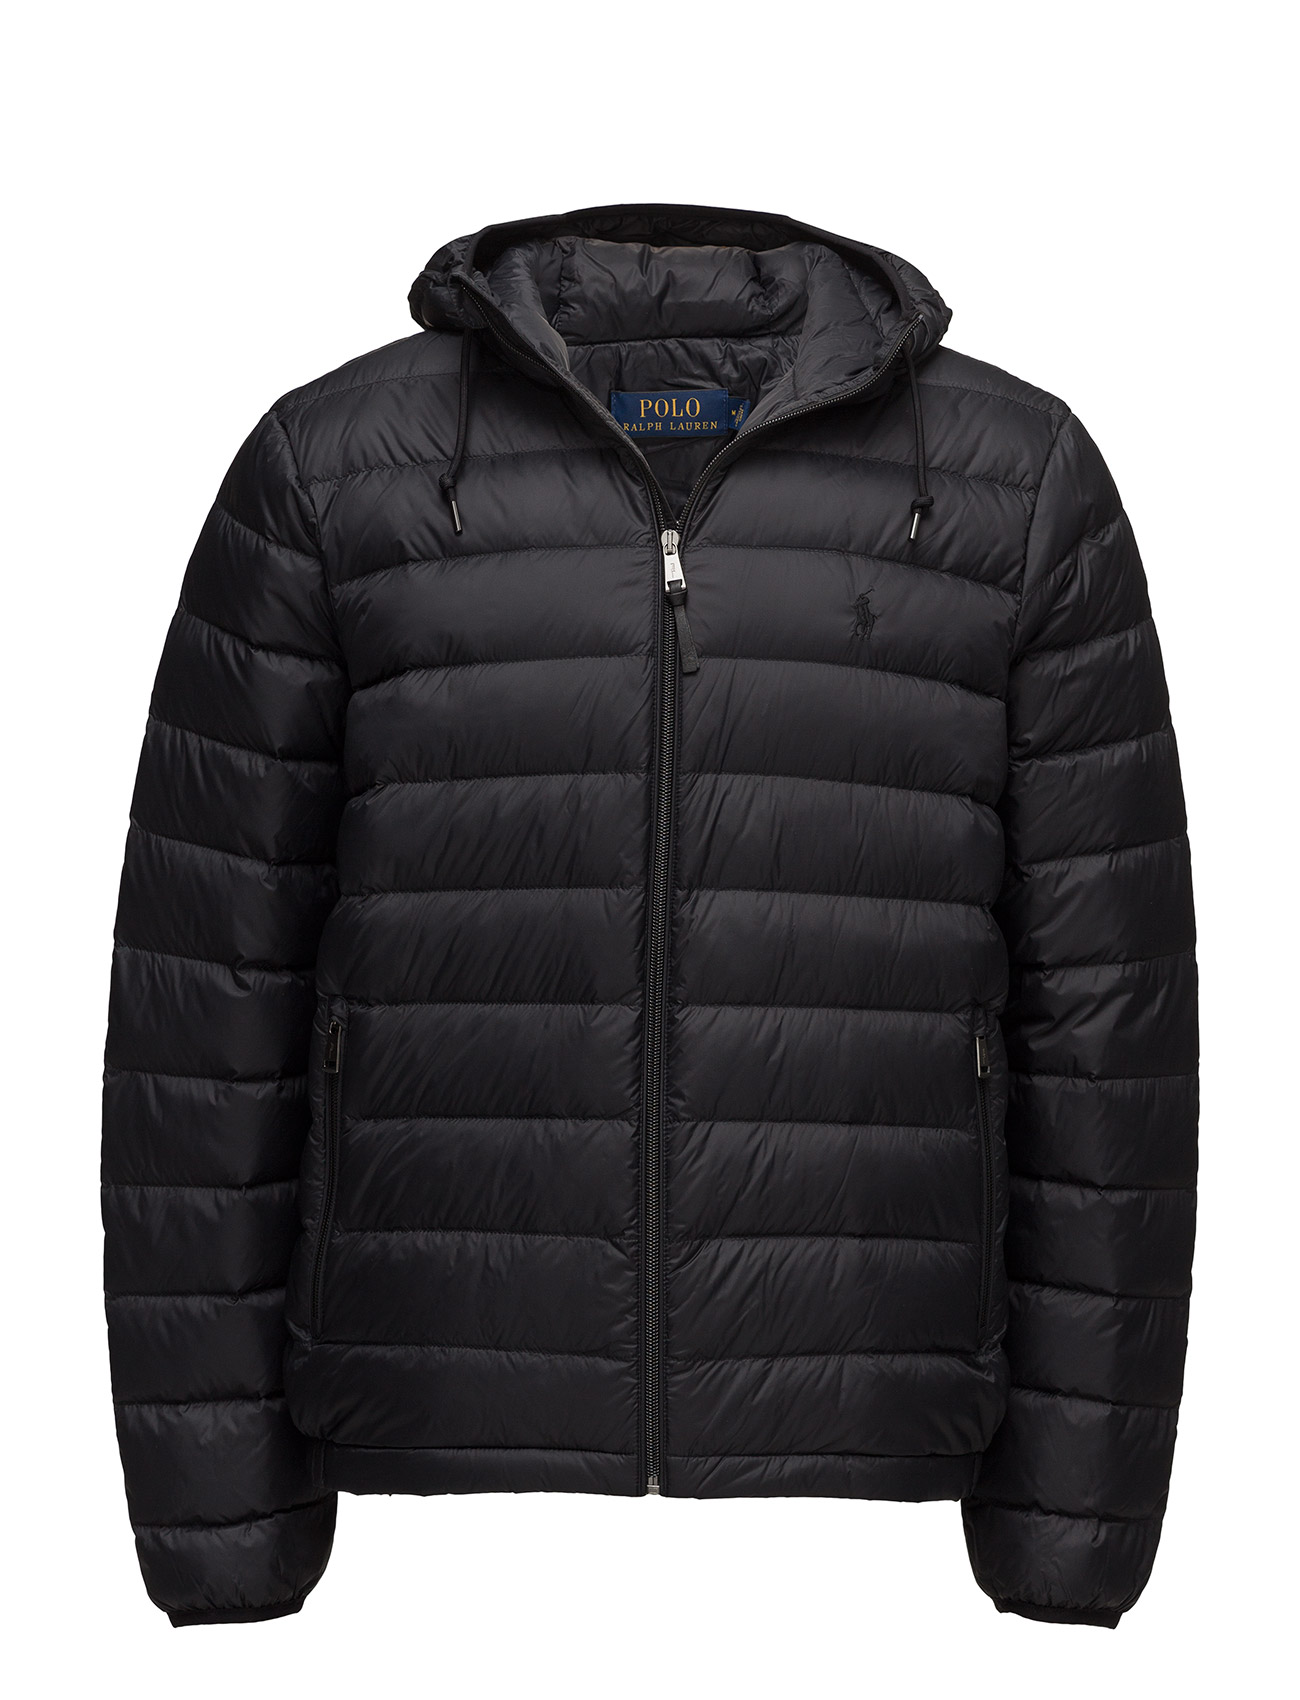 packable hooded down jacket polo black 299 polo. Black Bedroom Furniture Sets. Home Design Ideas